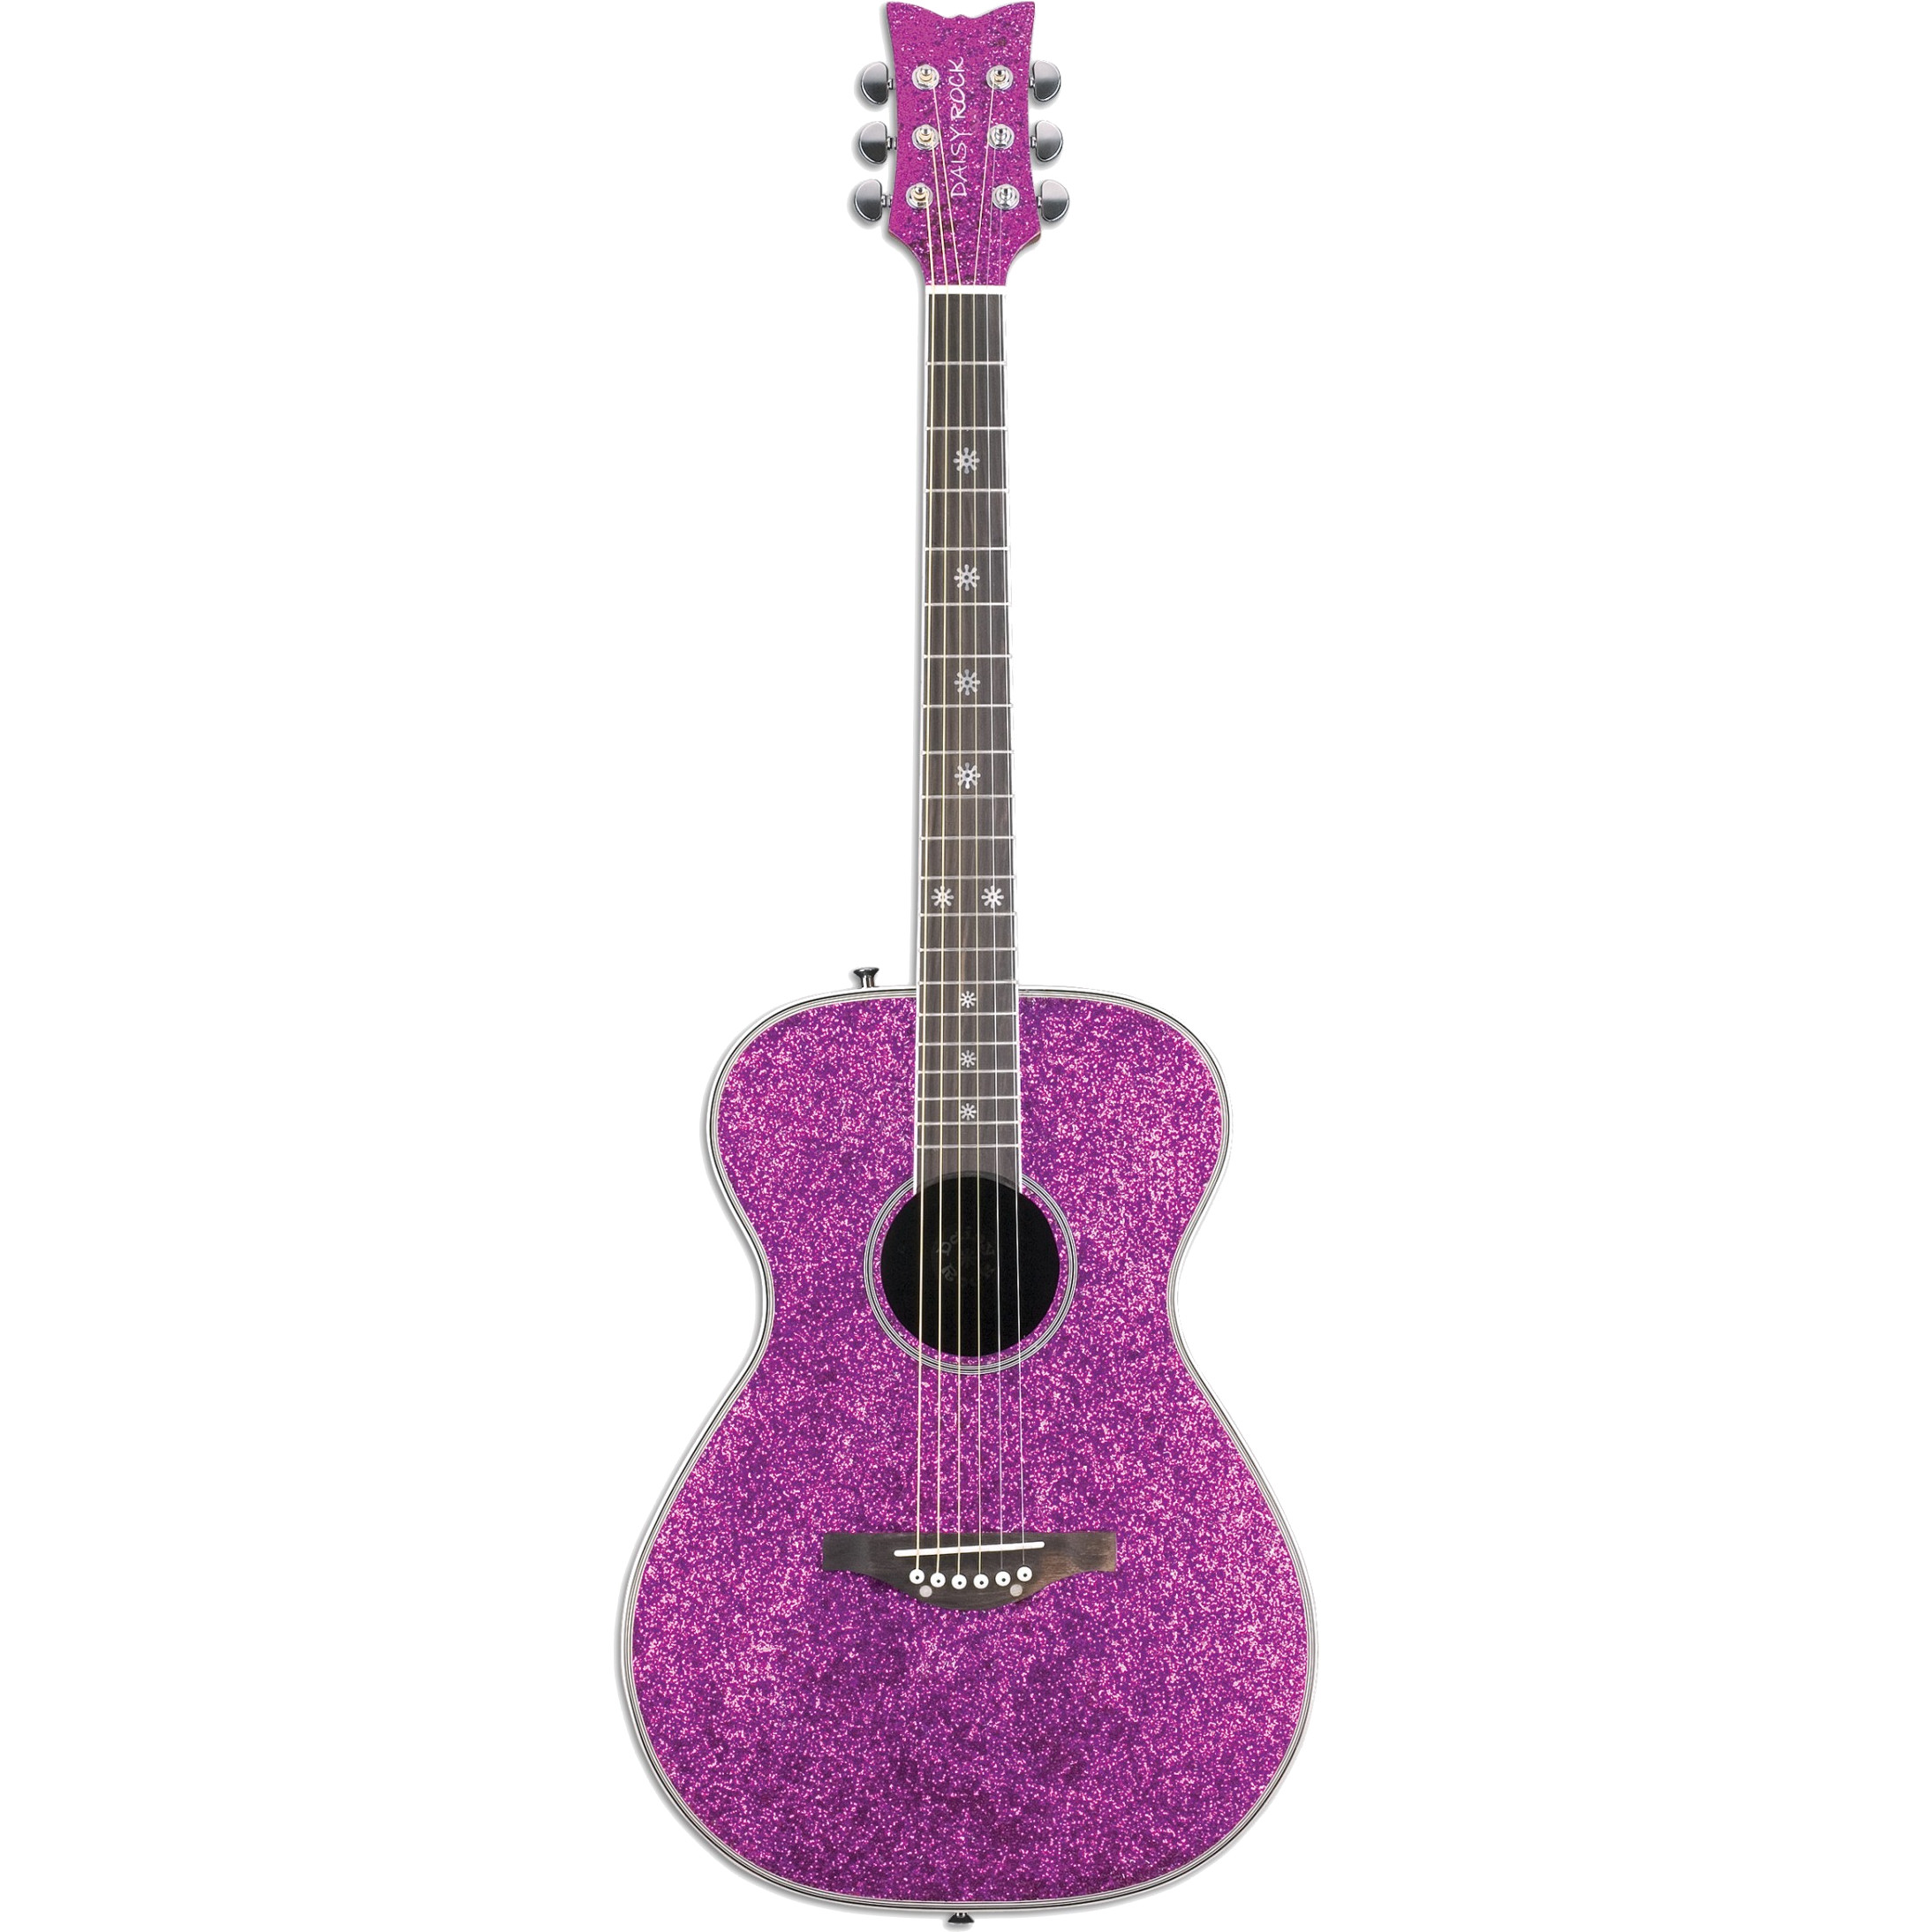 Daisy Rock Pixie Acoustic Pink Sparkle steel string guitar